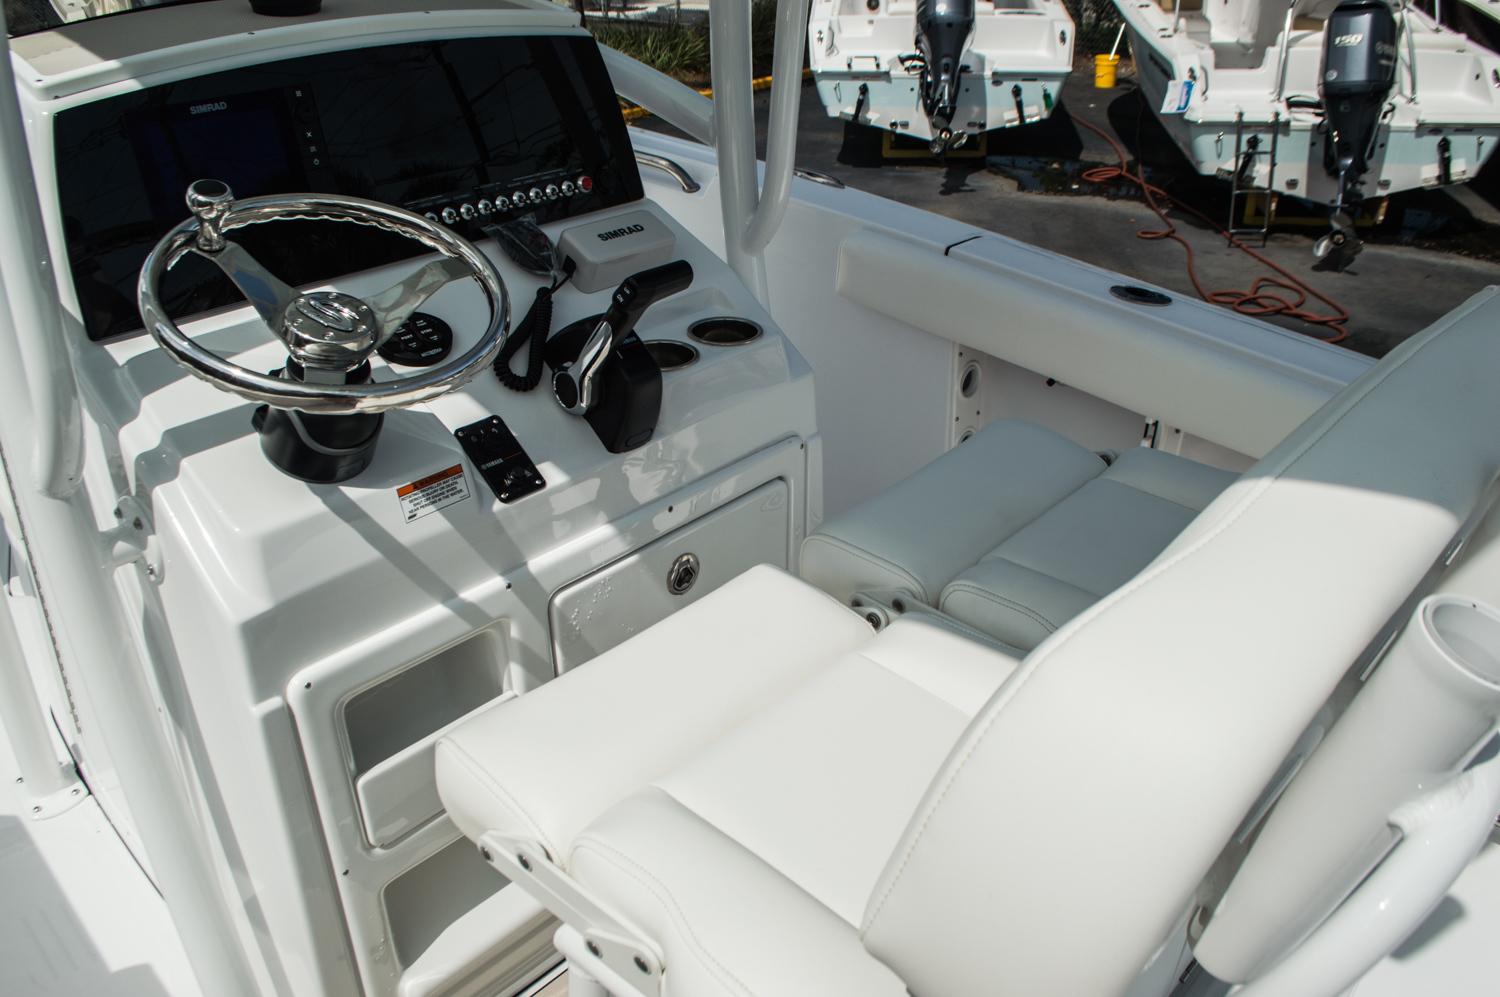 Thumbnail 25 for New 2016 Sportsman Open 232 Center Console boat for sale in West Palm Beach, FL